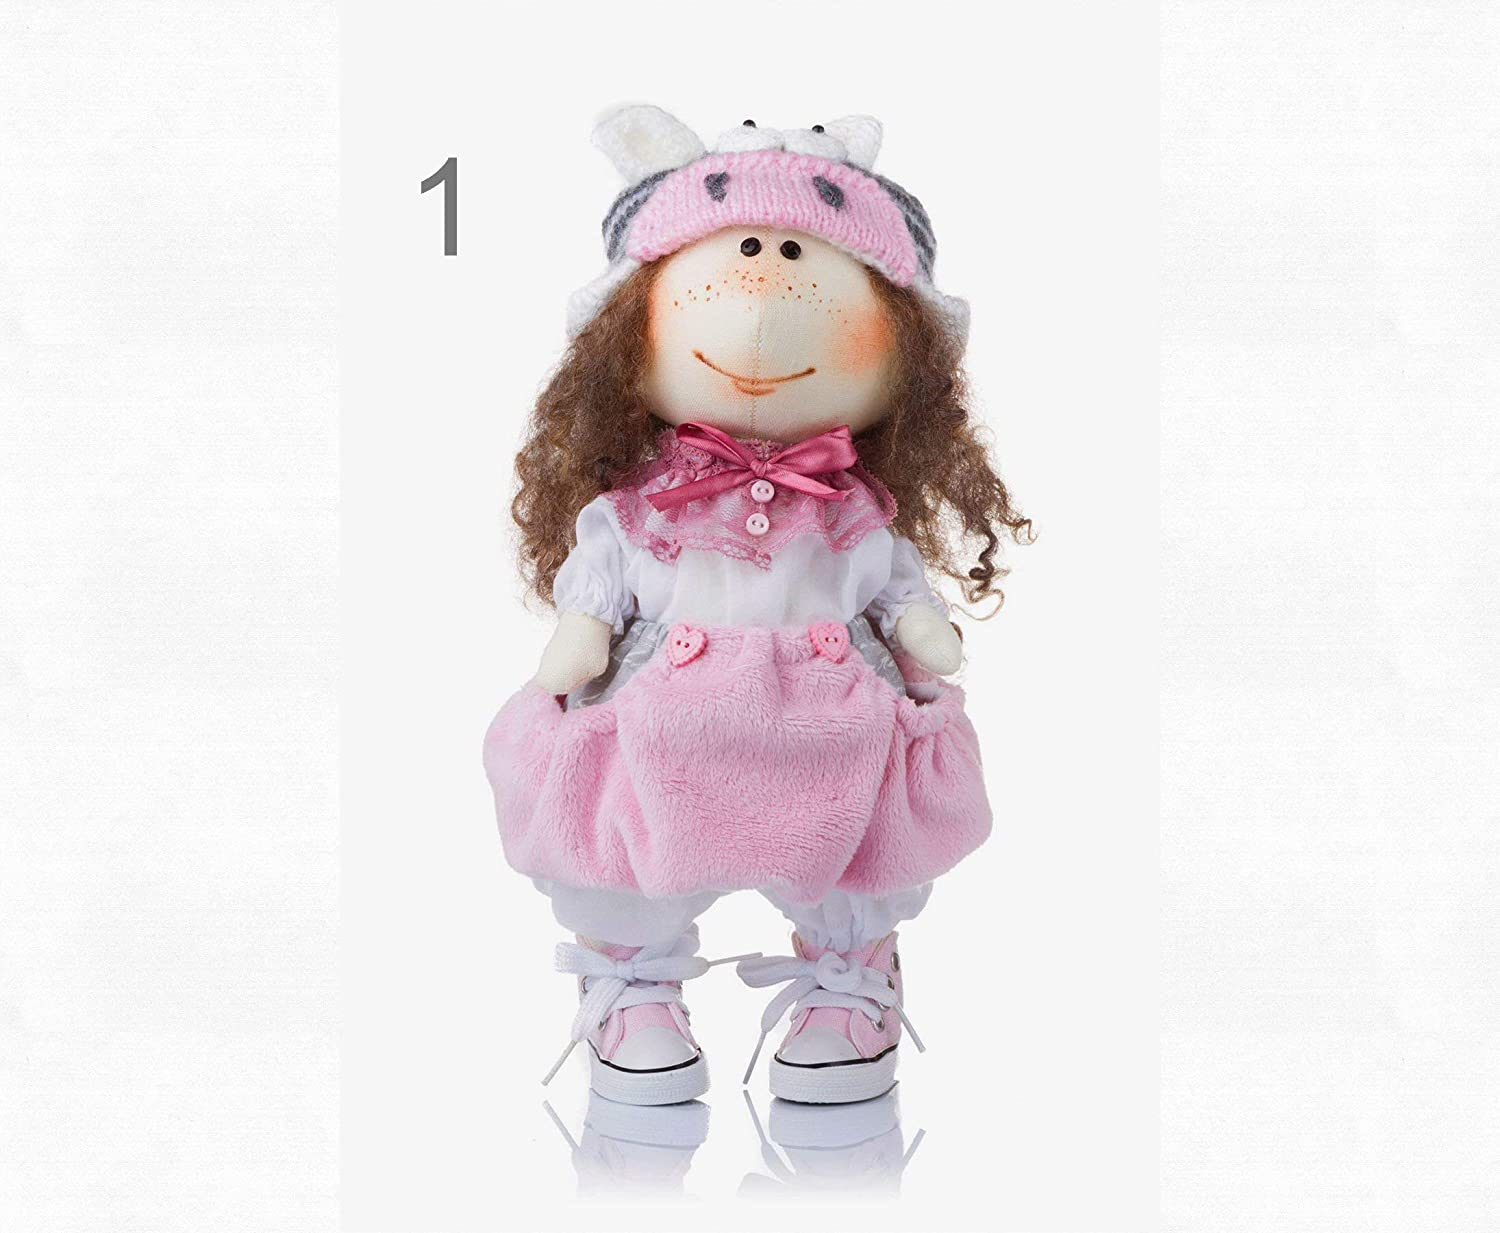 Handmade Soft Toy American Girl Doll In Zebra Hat 14 Inch Collectible Dolls Room Decor